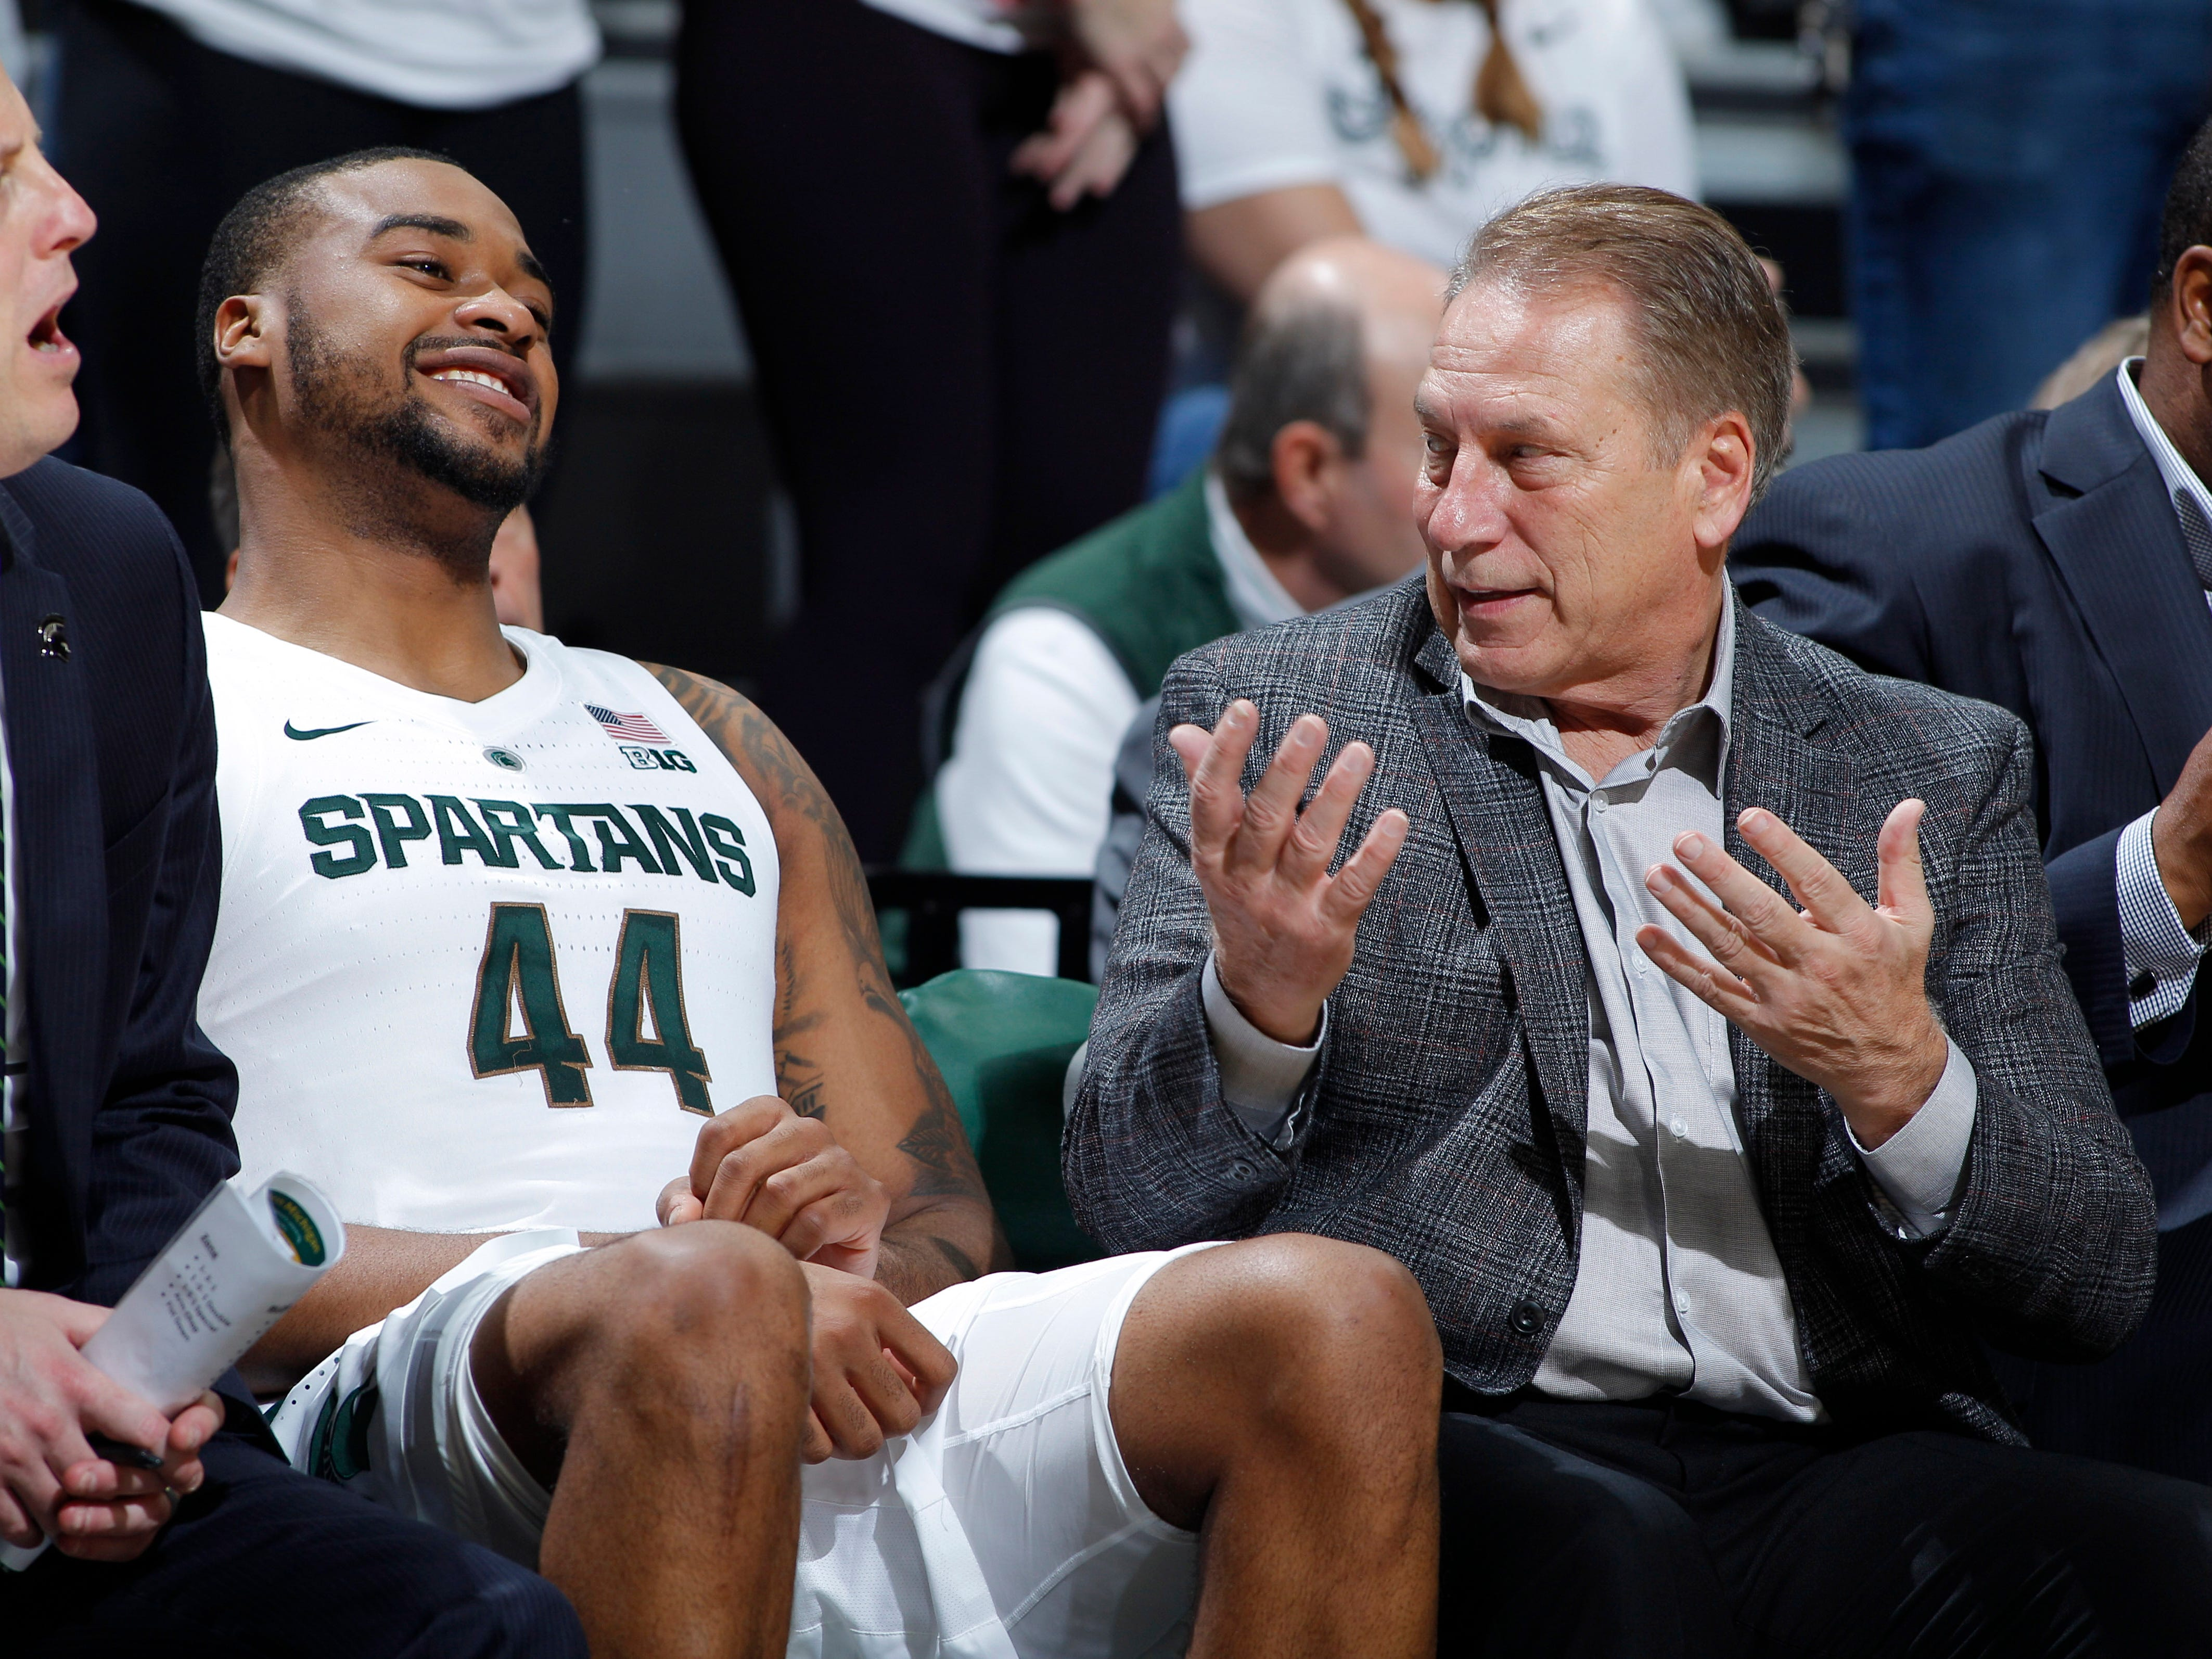 Michigan State's Nick Ward, left, and coach Tom Izzo, talk on the bench against Northern Michigan, Tuesday, Oct. 30, 2018, in East Lansing, Mich.